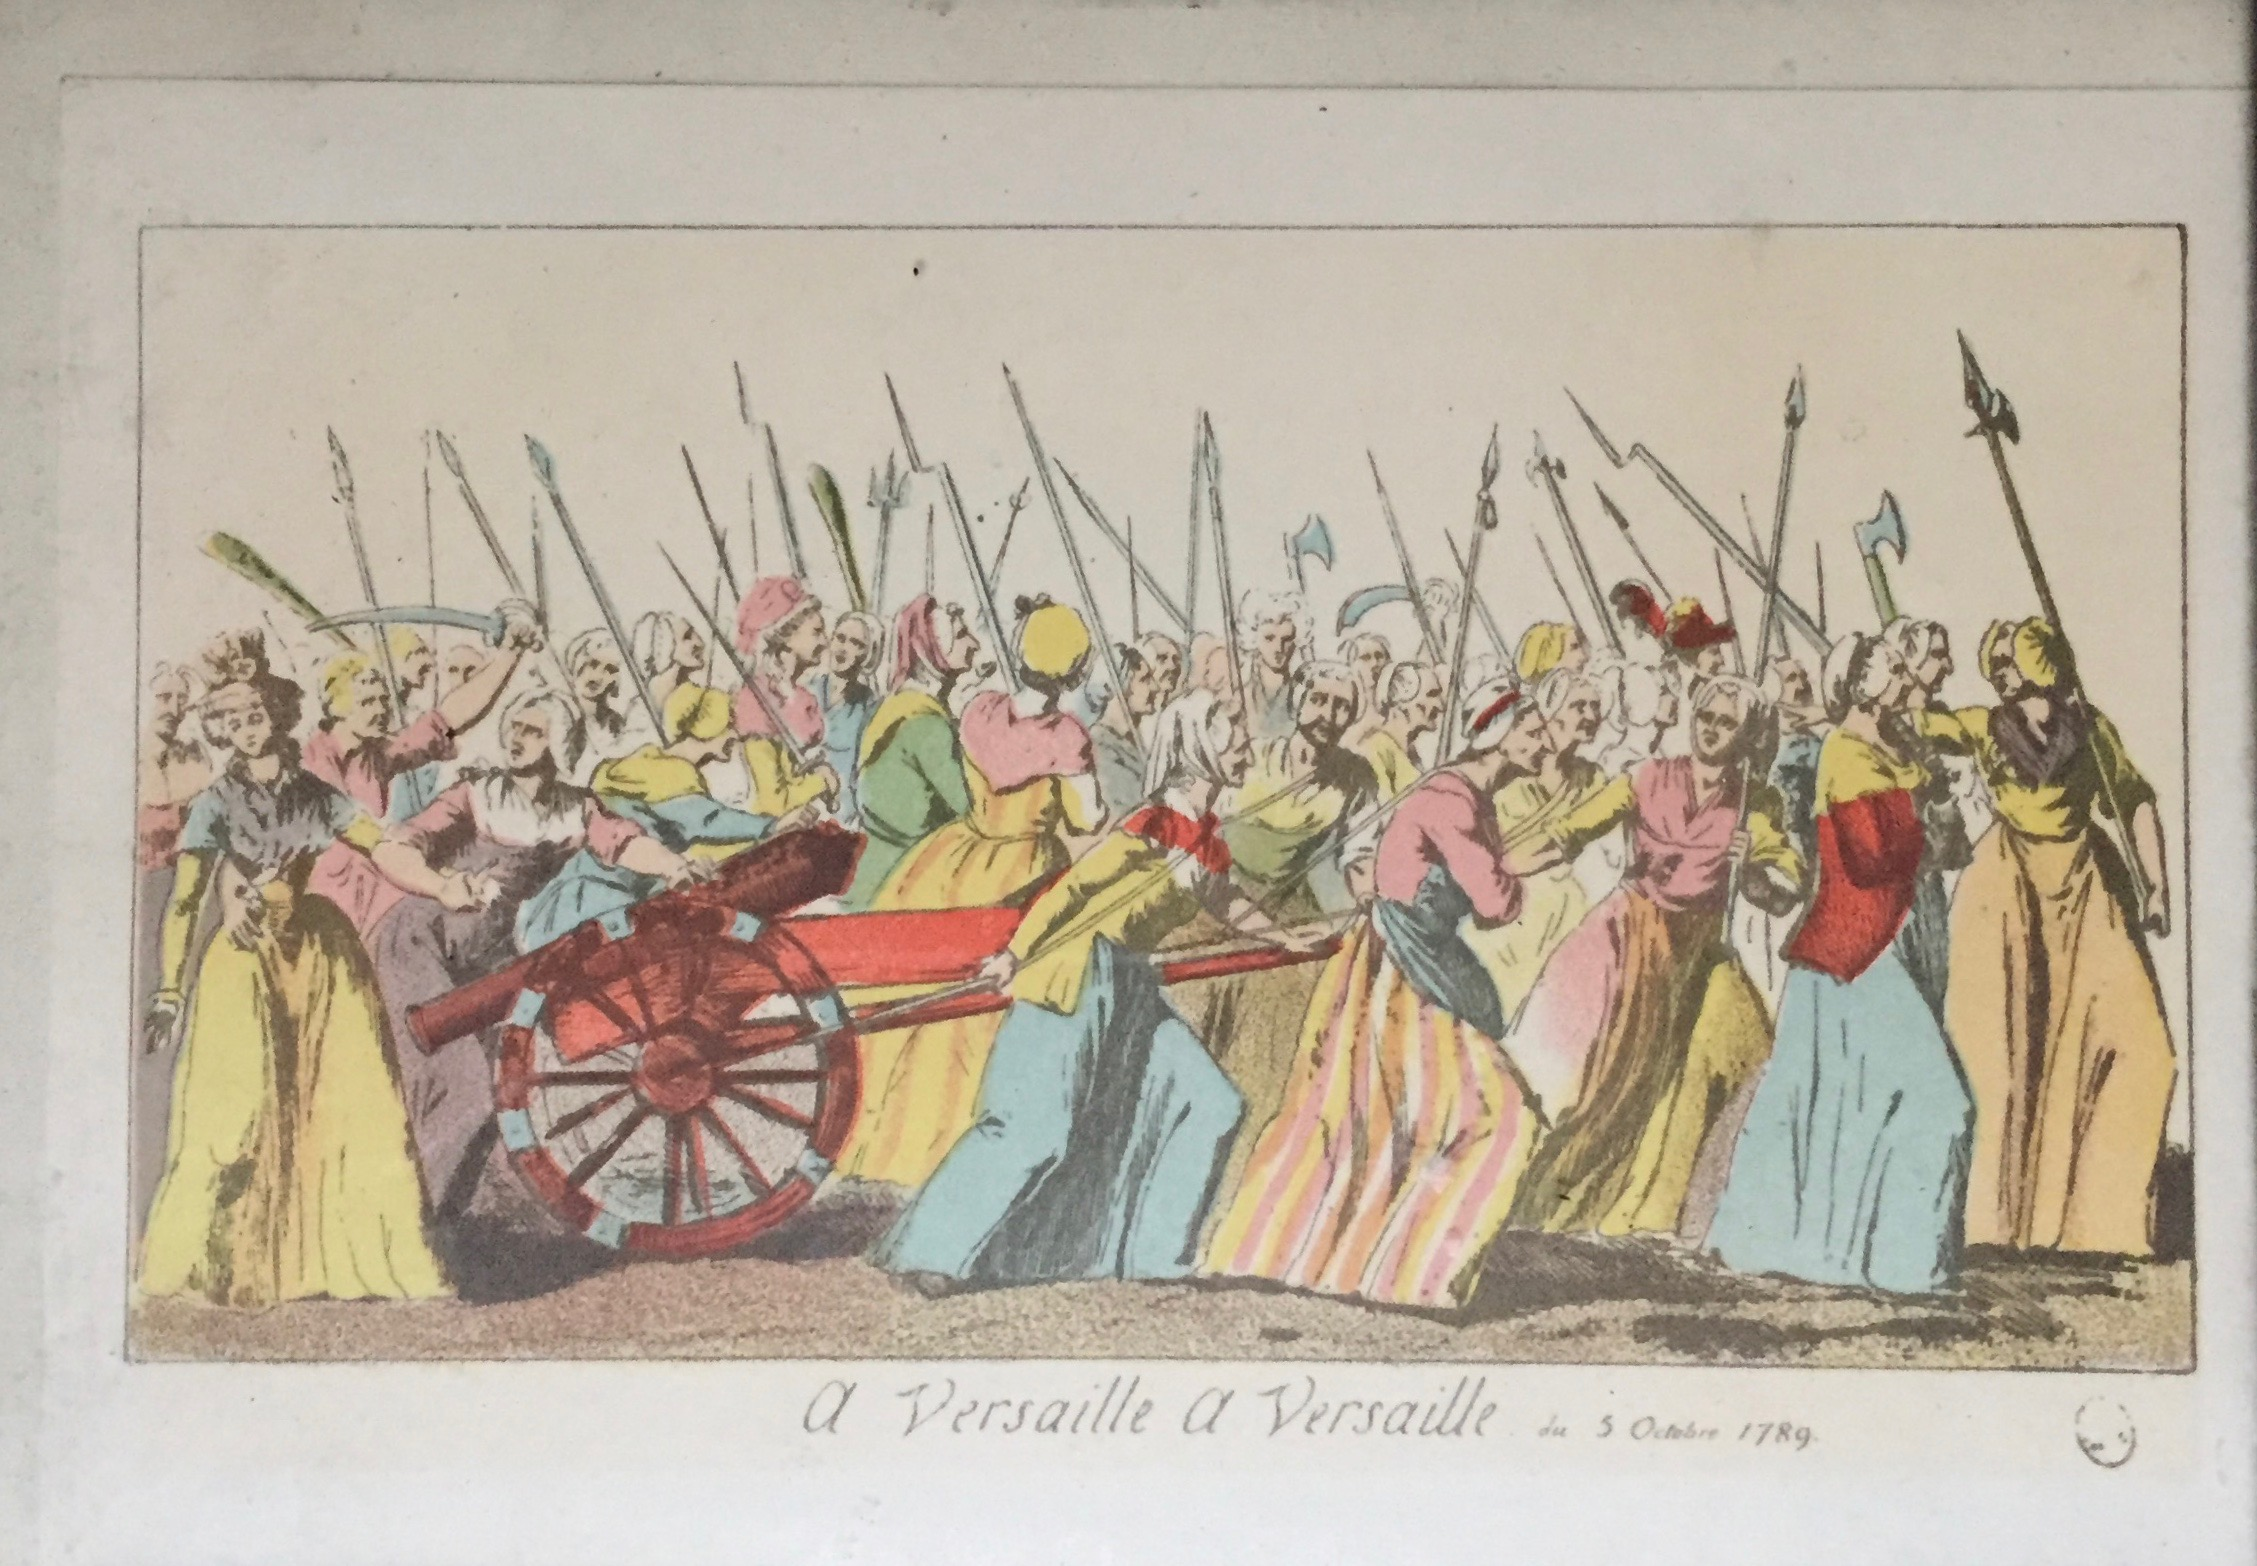 'A Versaille, a Versaille, du 5 Octobre 1789'. Image from author's own collection.